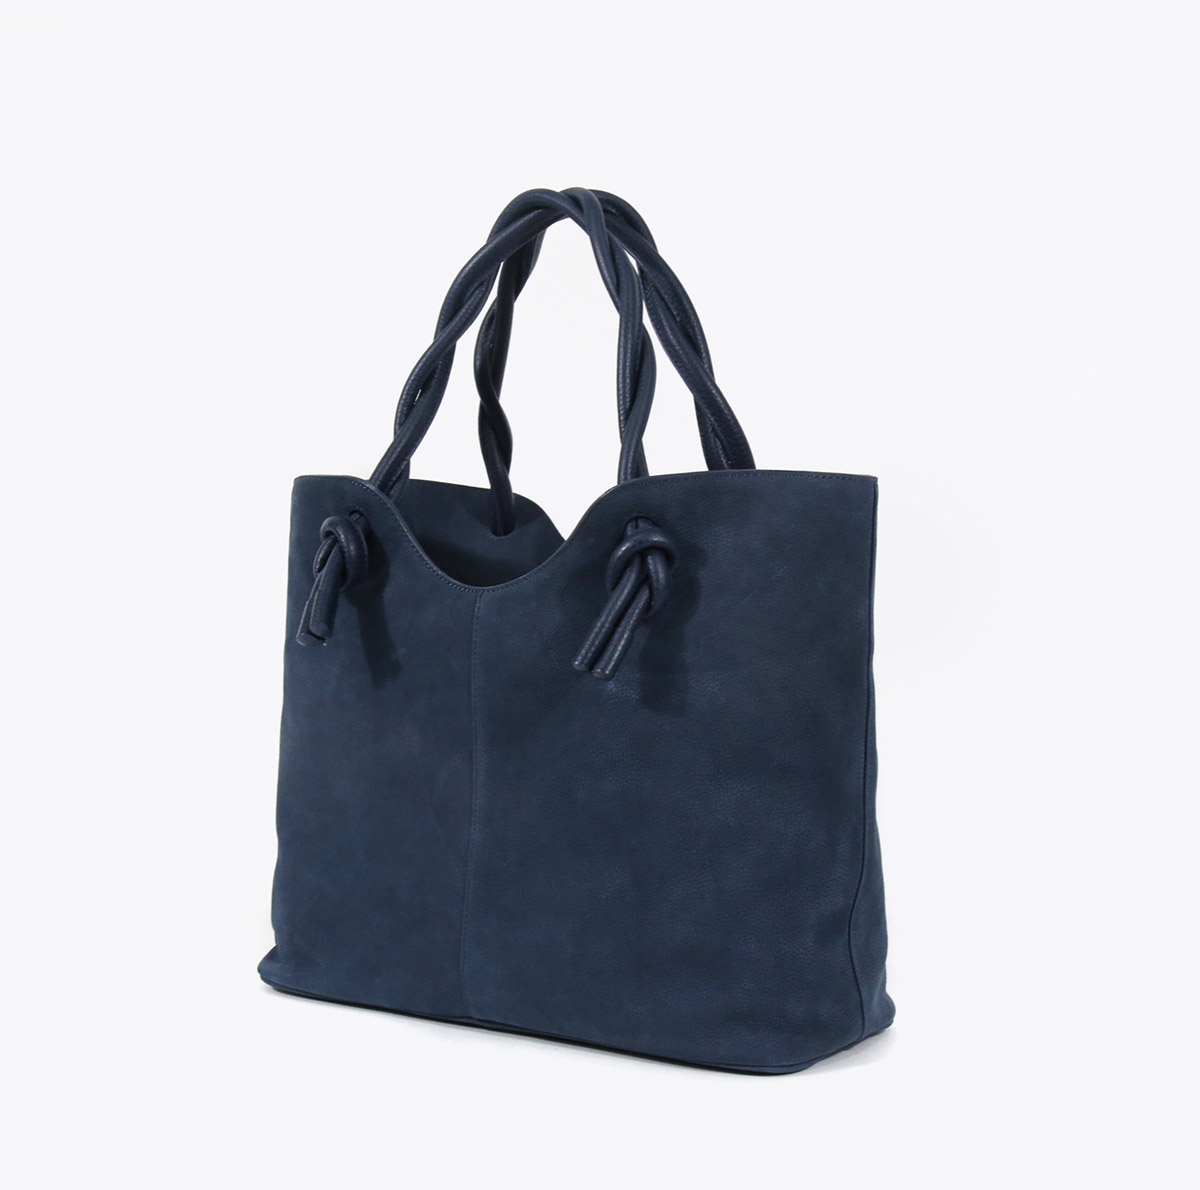 Neely And Chloe No. 45 The Twist Tote Nubuck